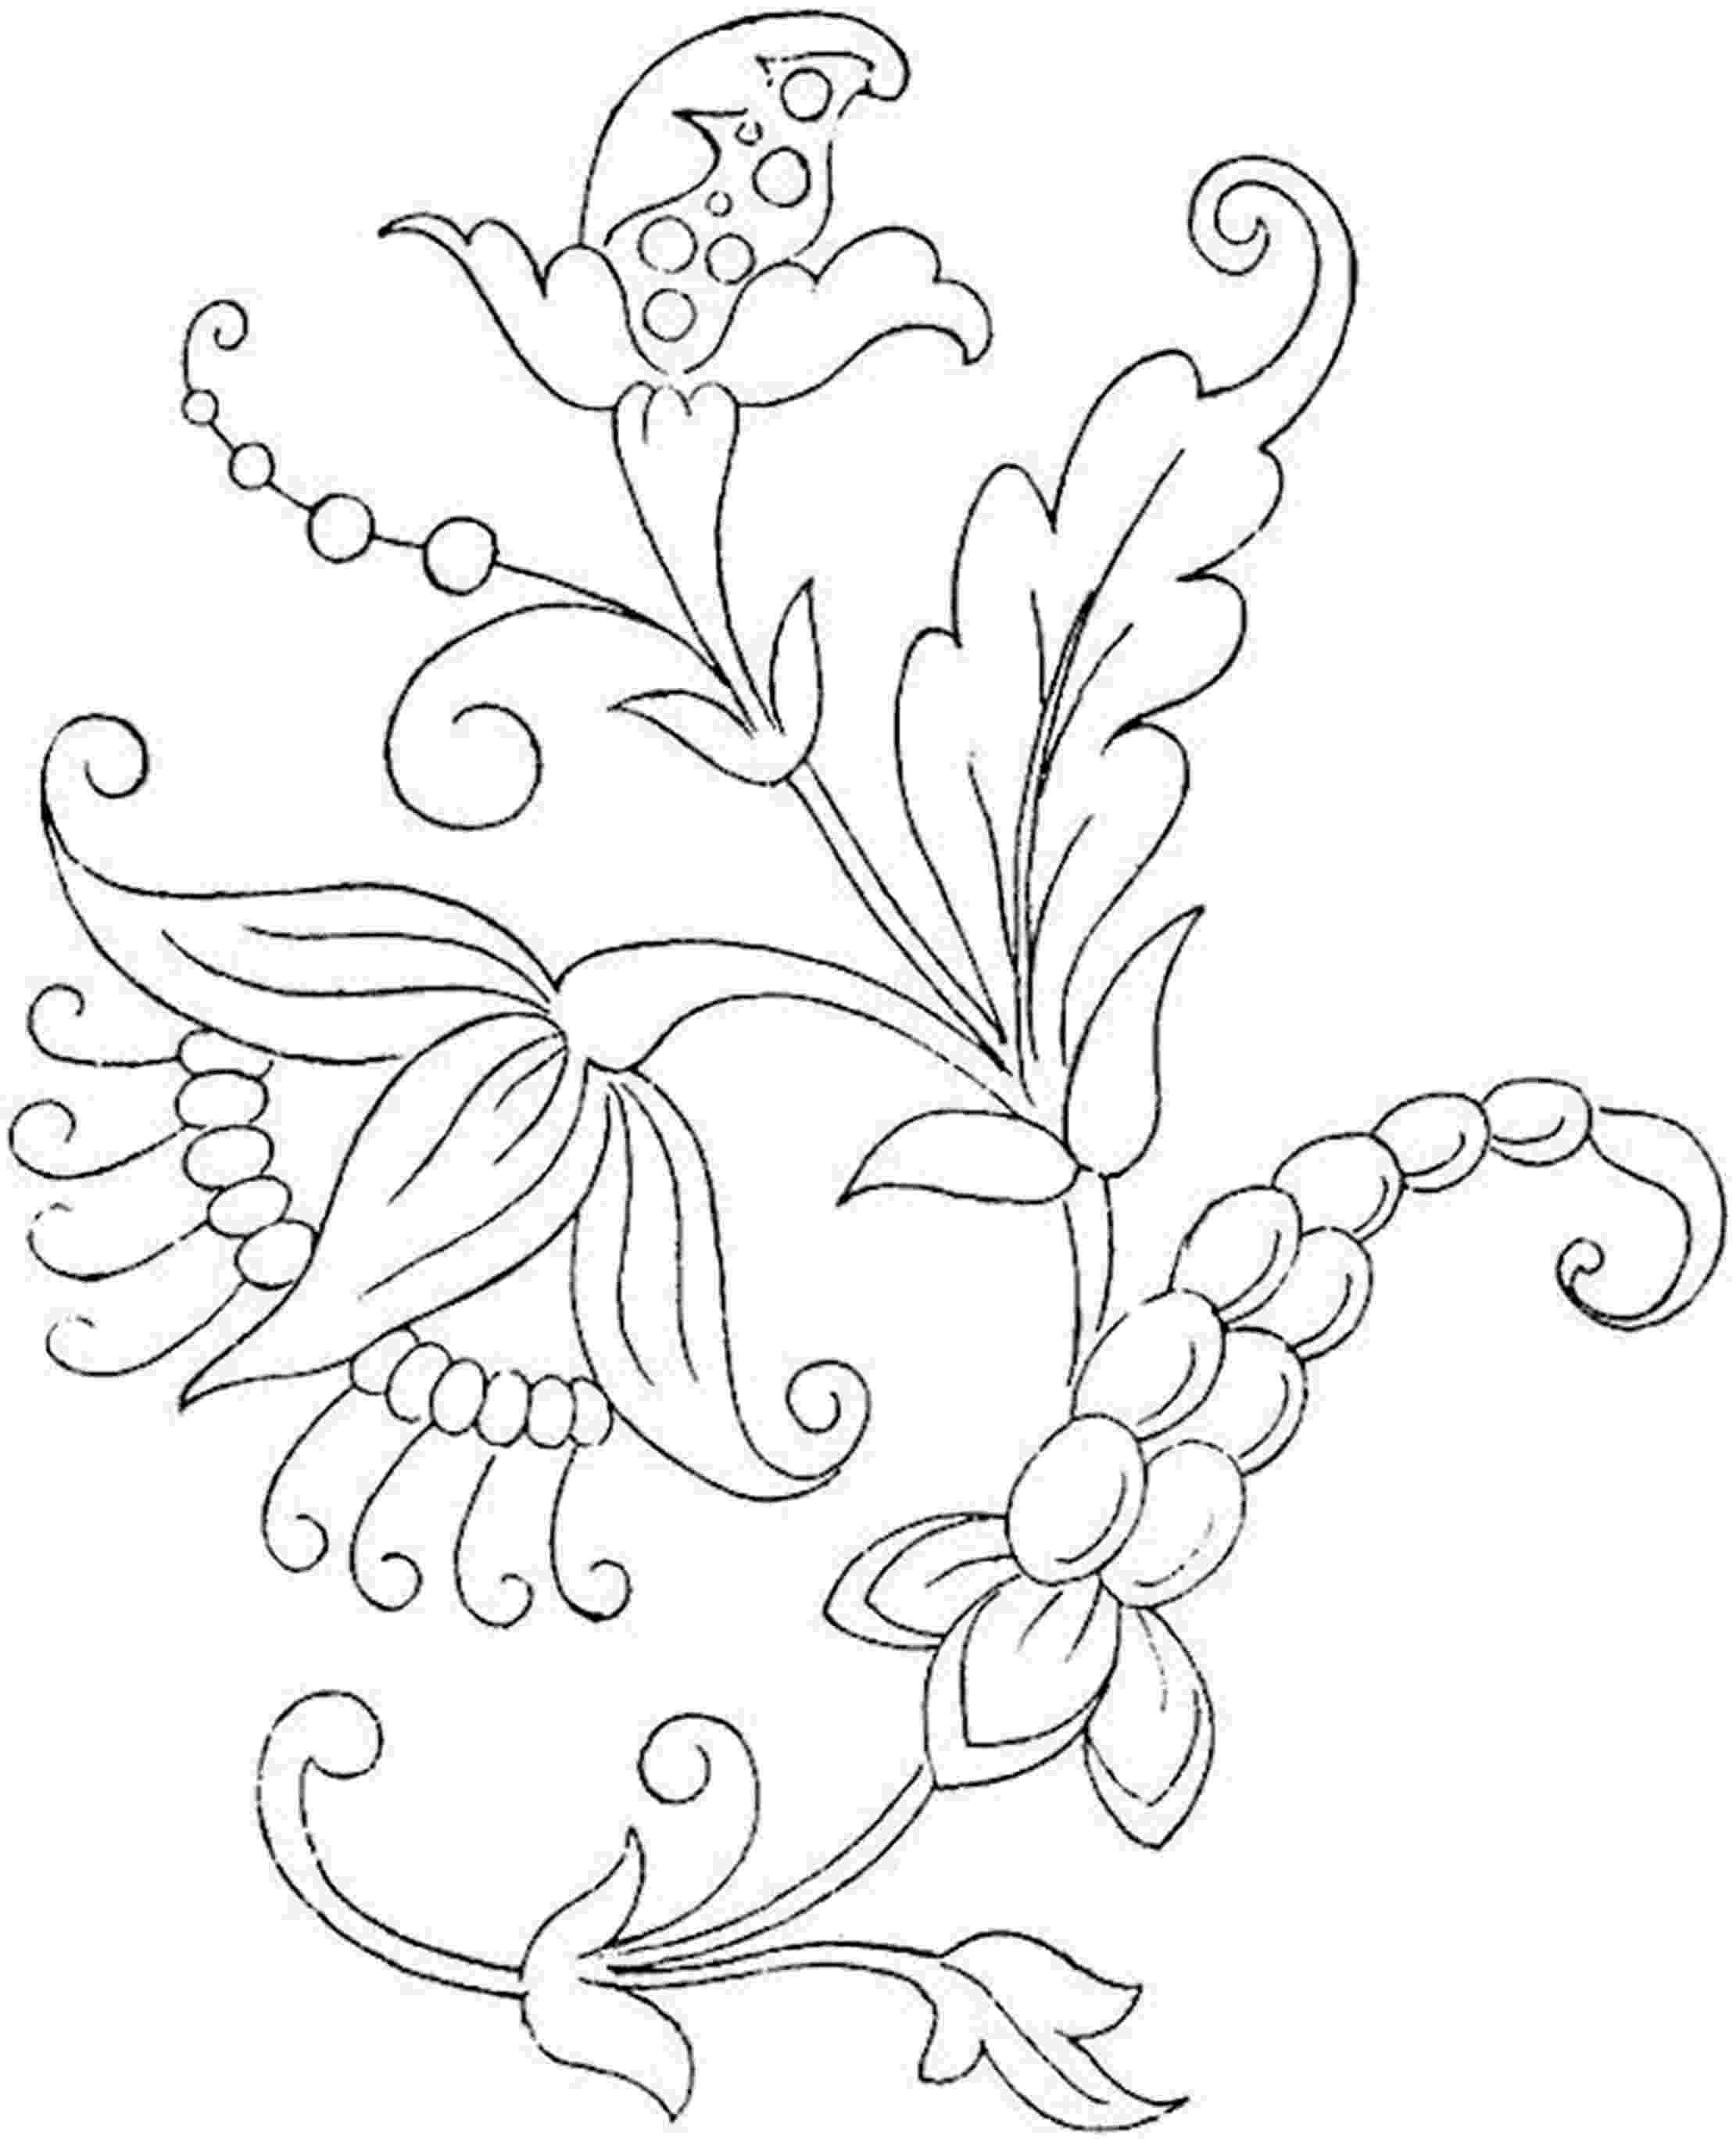 color page flower free printable flower coloring pages for kids best color flower page 1 3